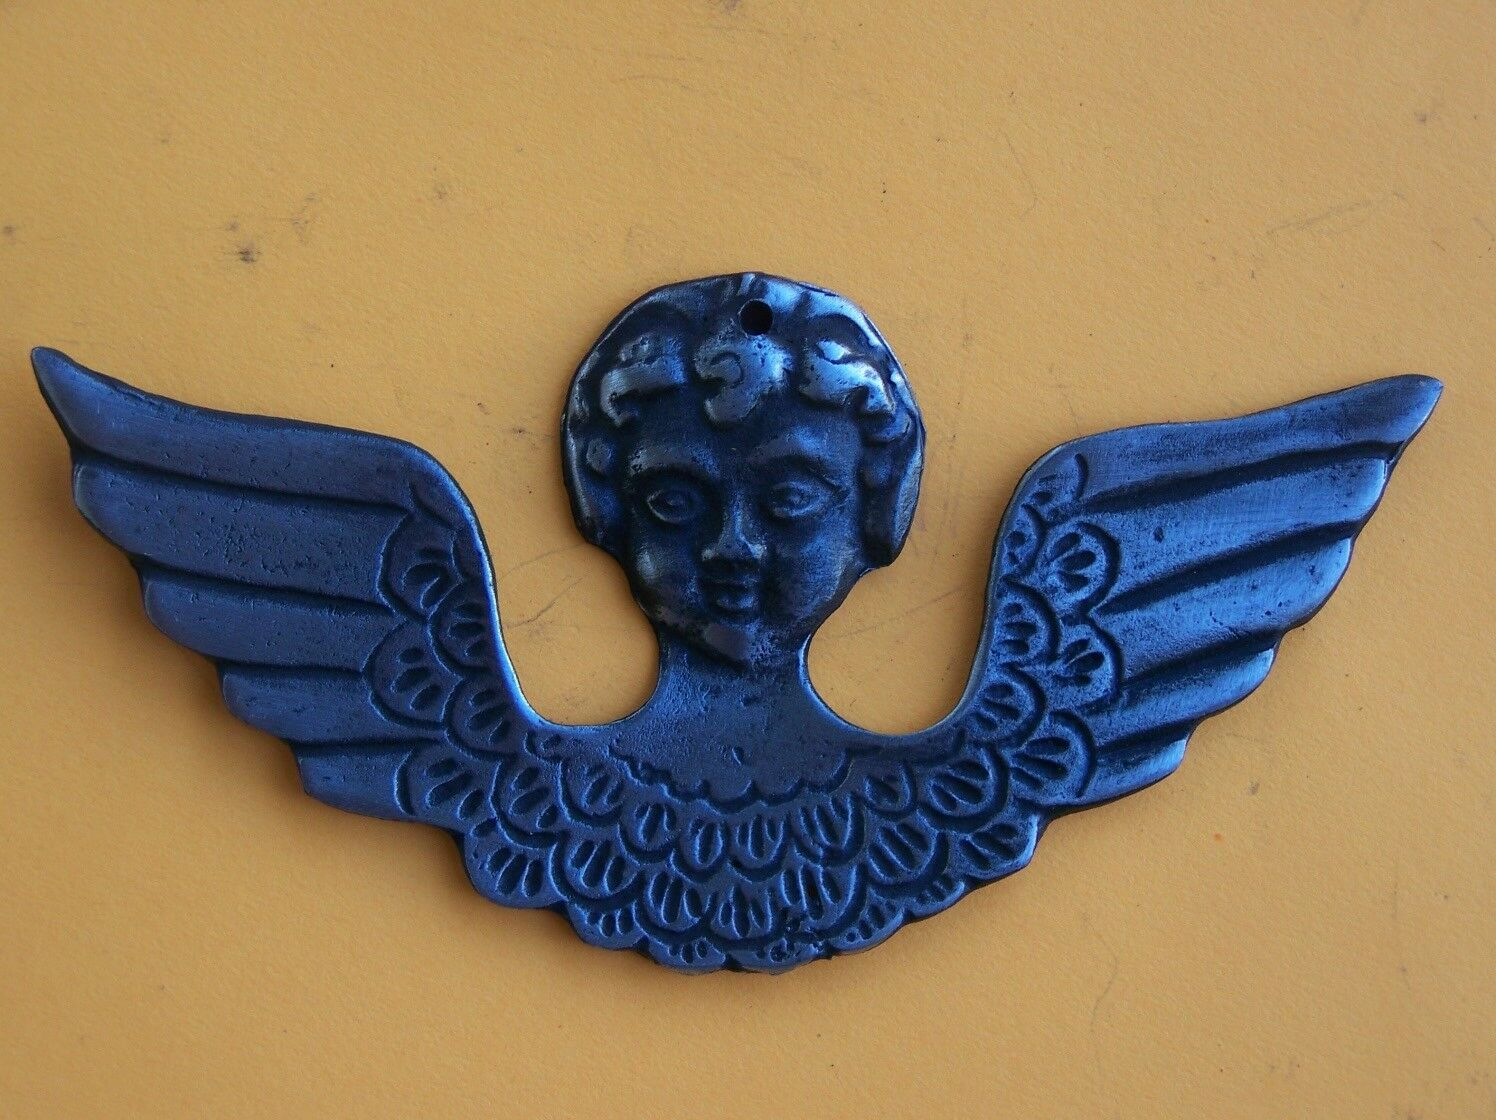 Tin/Silver Angel with Wings Fear of Flying Milagro Ex Voto 1